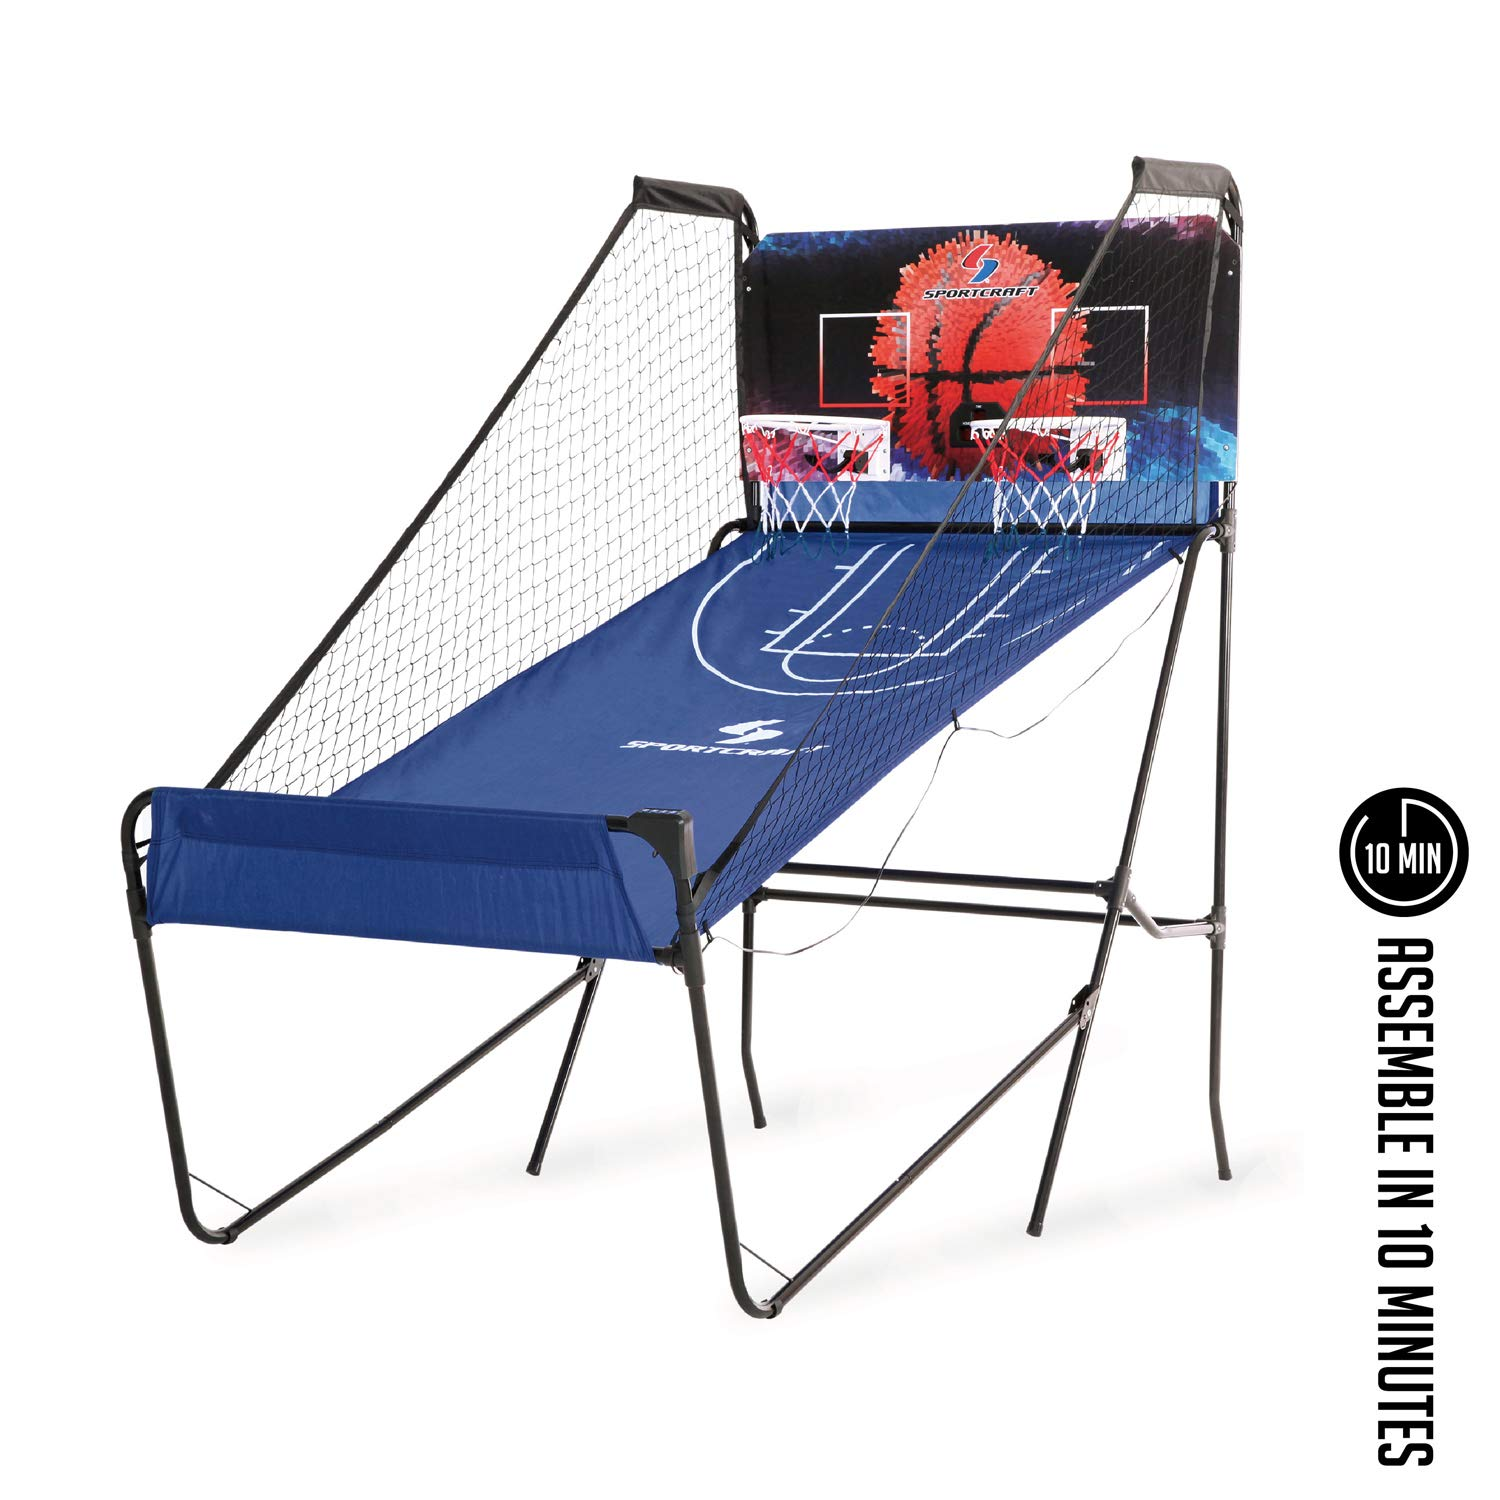 Sportcraft SIR00733 Quick Set-Up Basketball Arcade 8 Game Modes, 2-Players, Setup Less Than 10 Mins, No Tools Required, Heavy Duty 1'' Steel Tube by Sportcraft (Image #6)